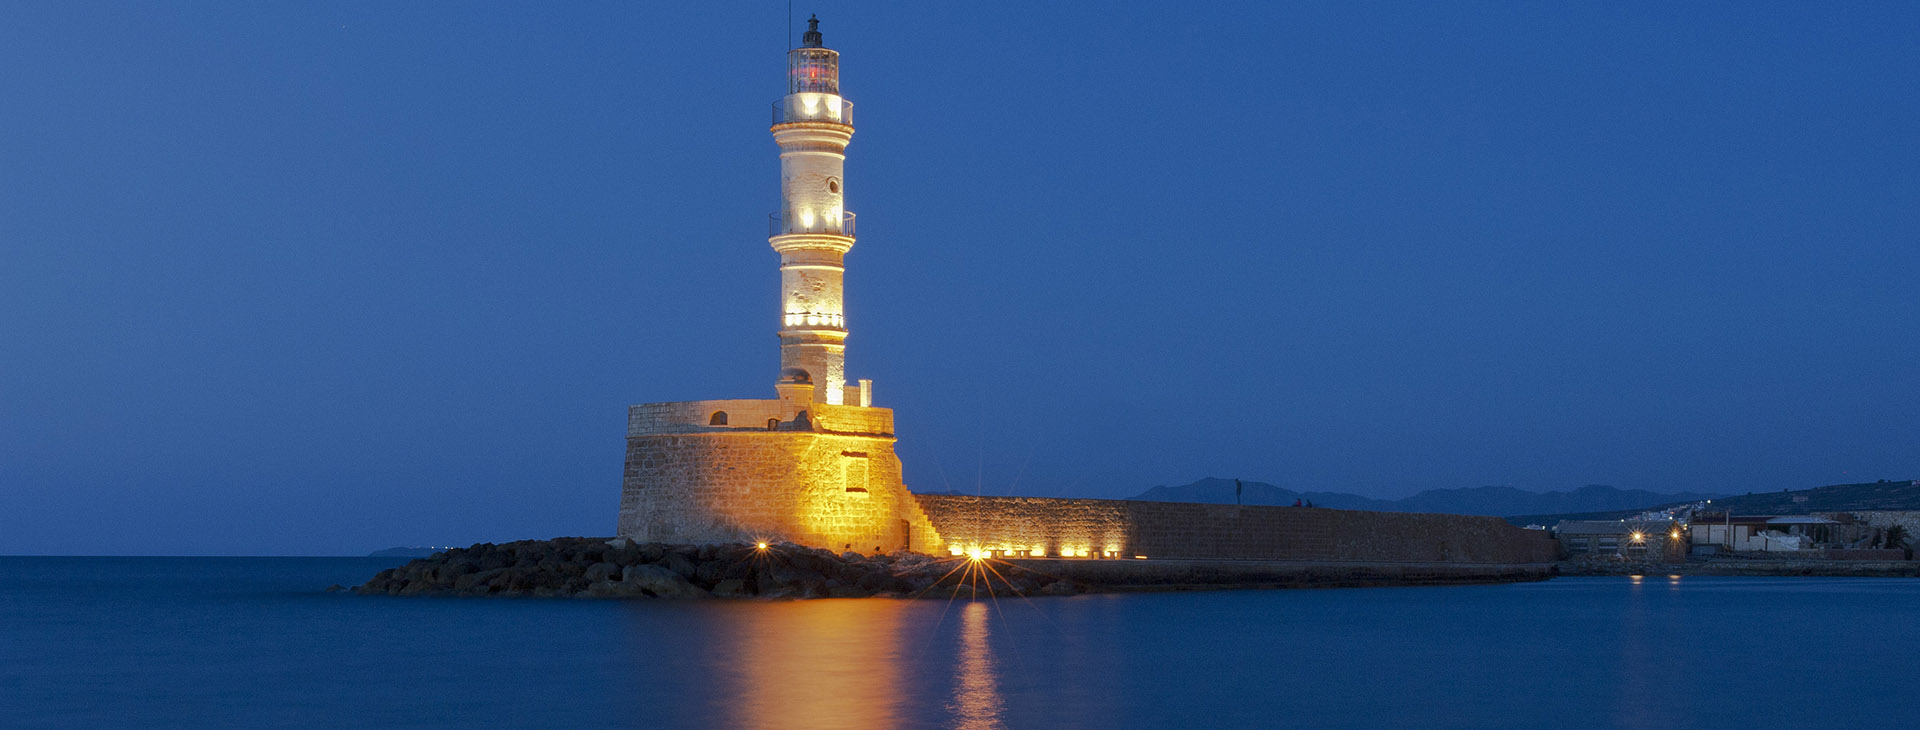 The Venetian Lighthouse at Chania harbour